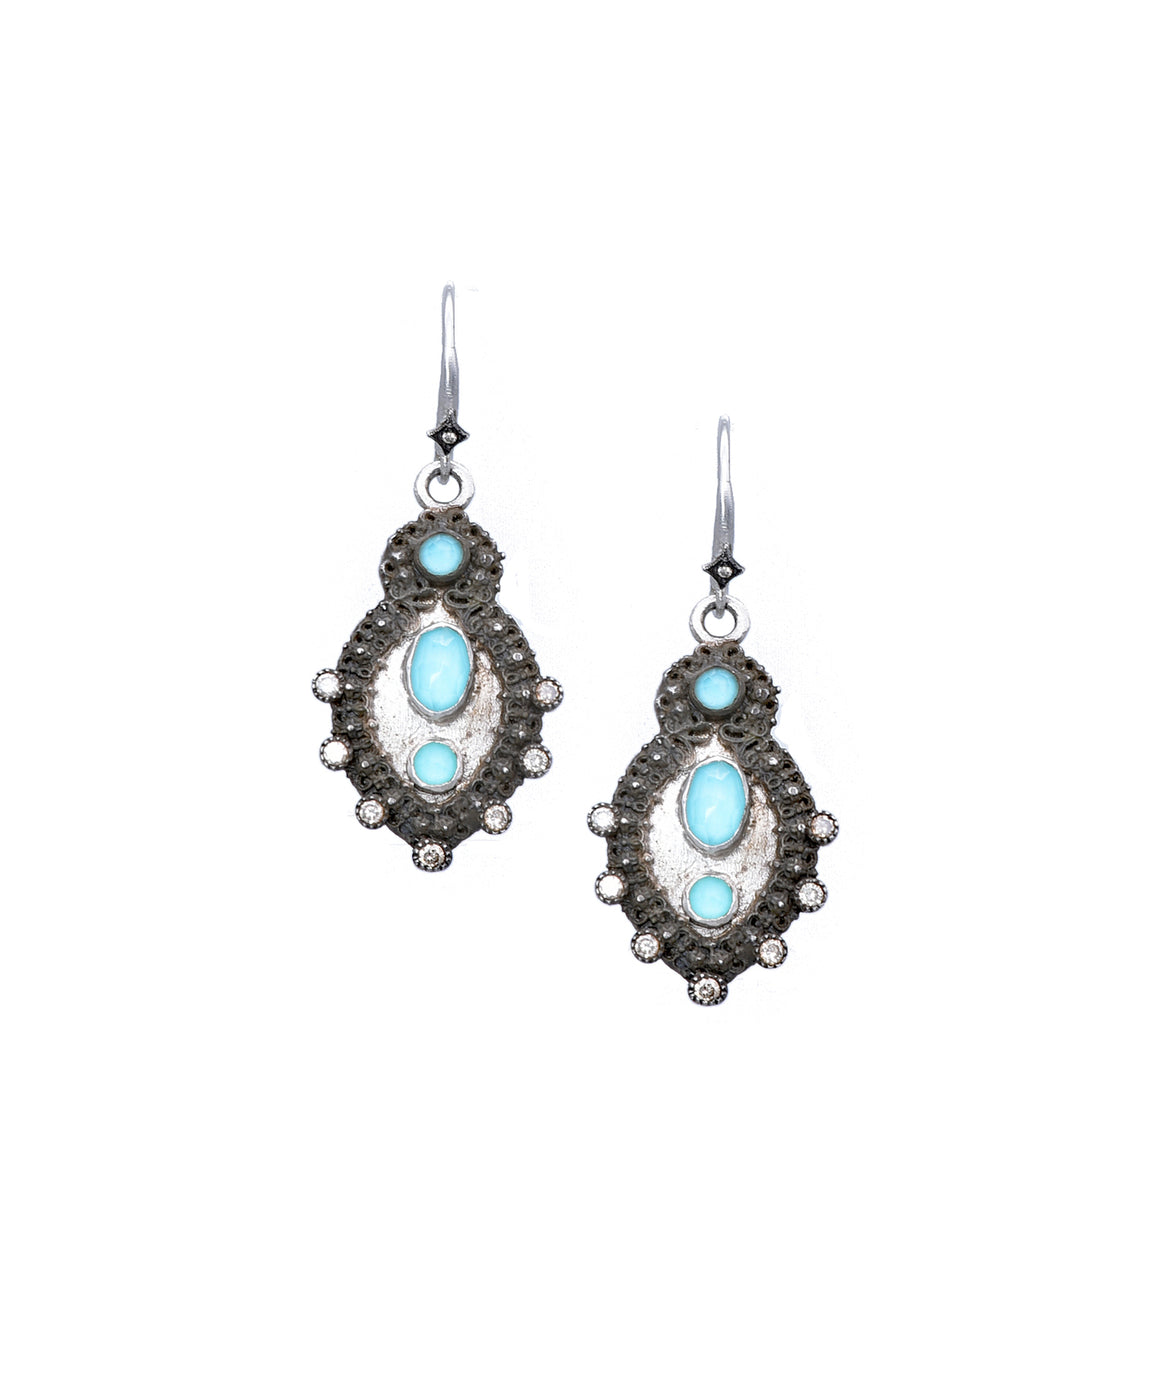 New World earrings with turquoise - Lesley Ann Jewels